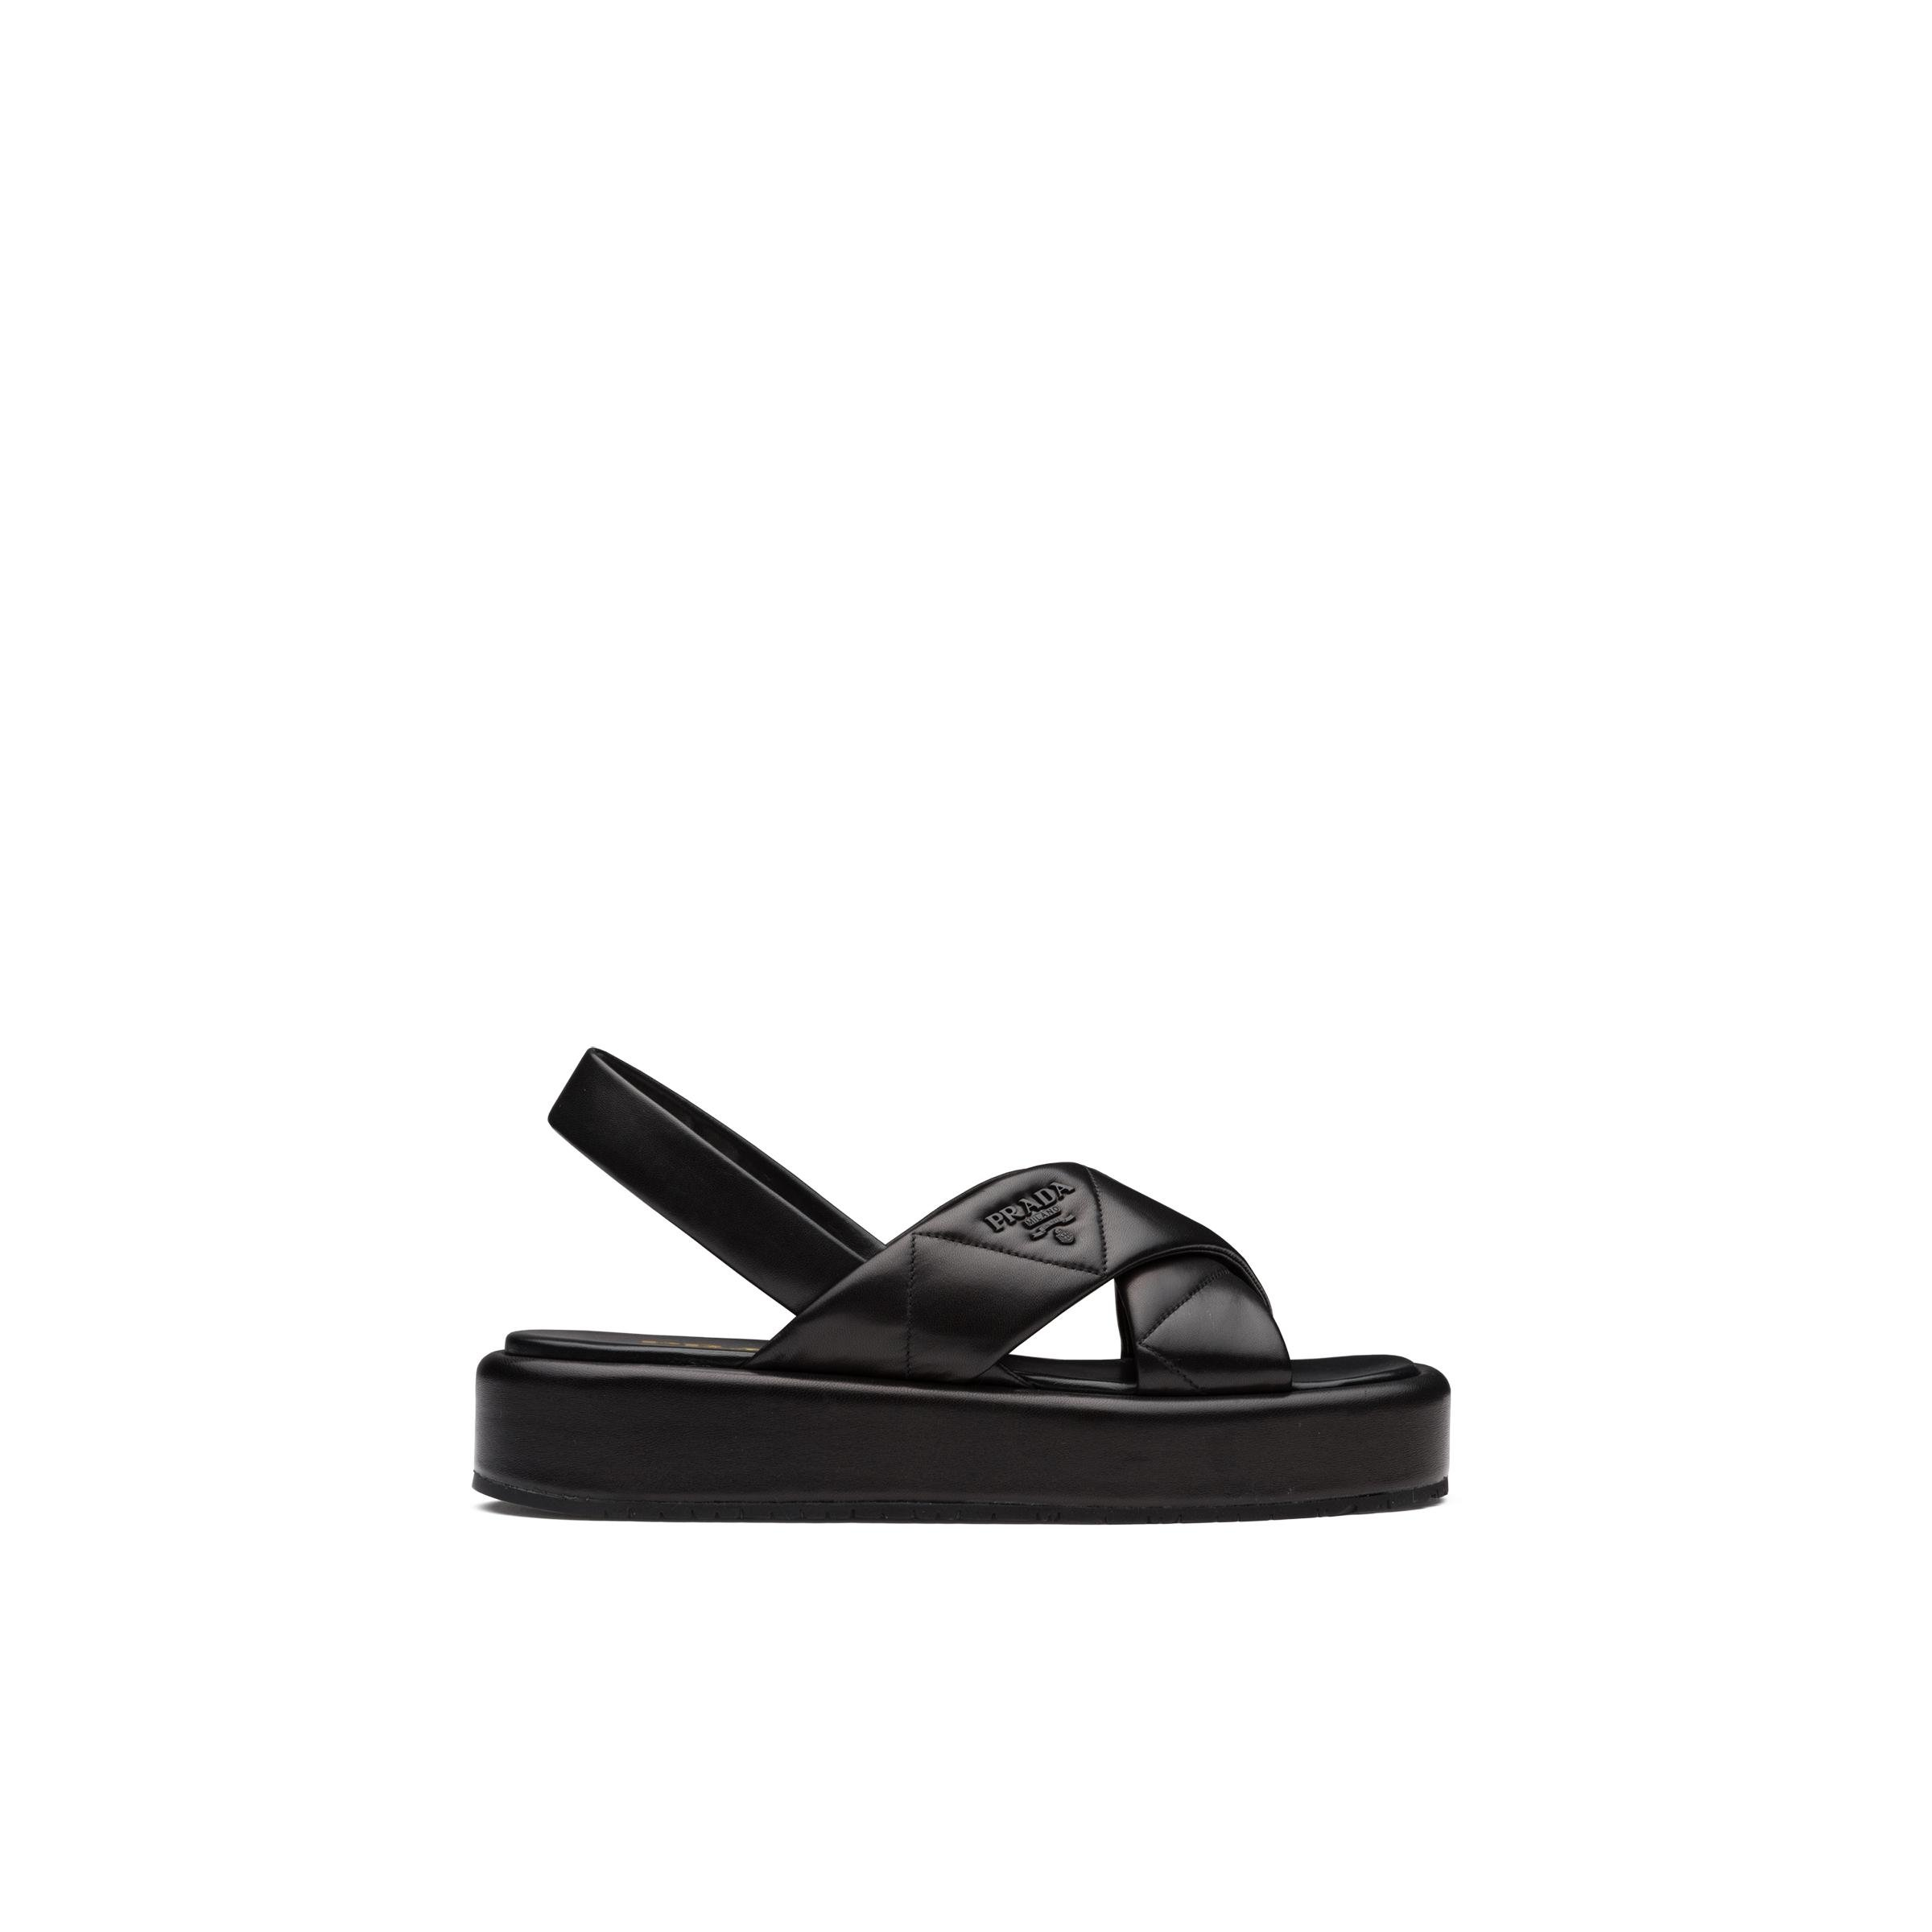 Quilted Nappa Leather Flatform Sandals Women Black 2